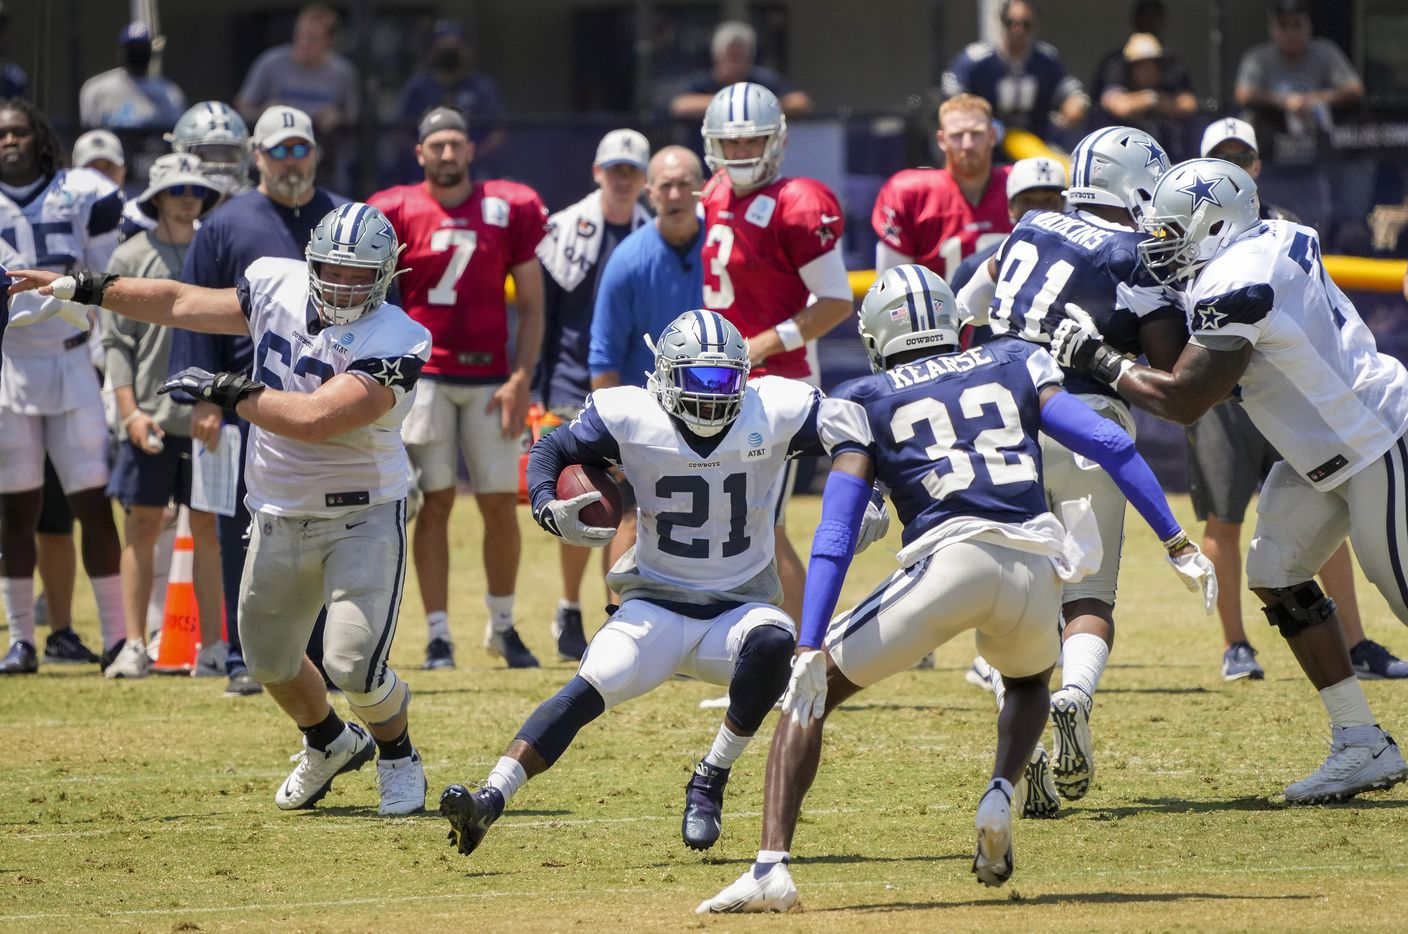 Dallas Cowboys running back Ezekiel Elliott (21) finds room to run as safety Jayron Kearse (32) closes in during a practice at training camp on Wednesday, July 28, 2021, in Oxnard, Calif.